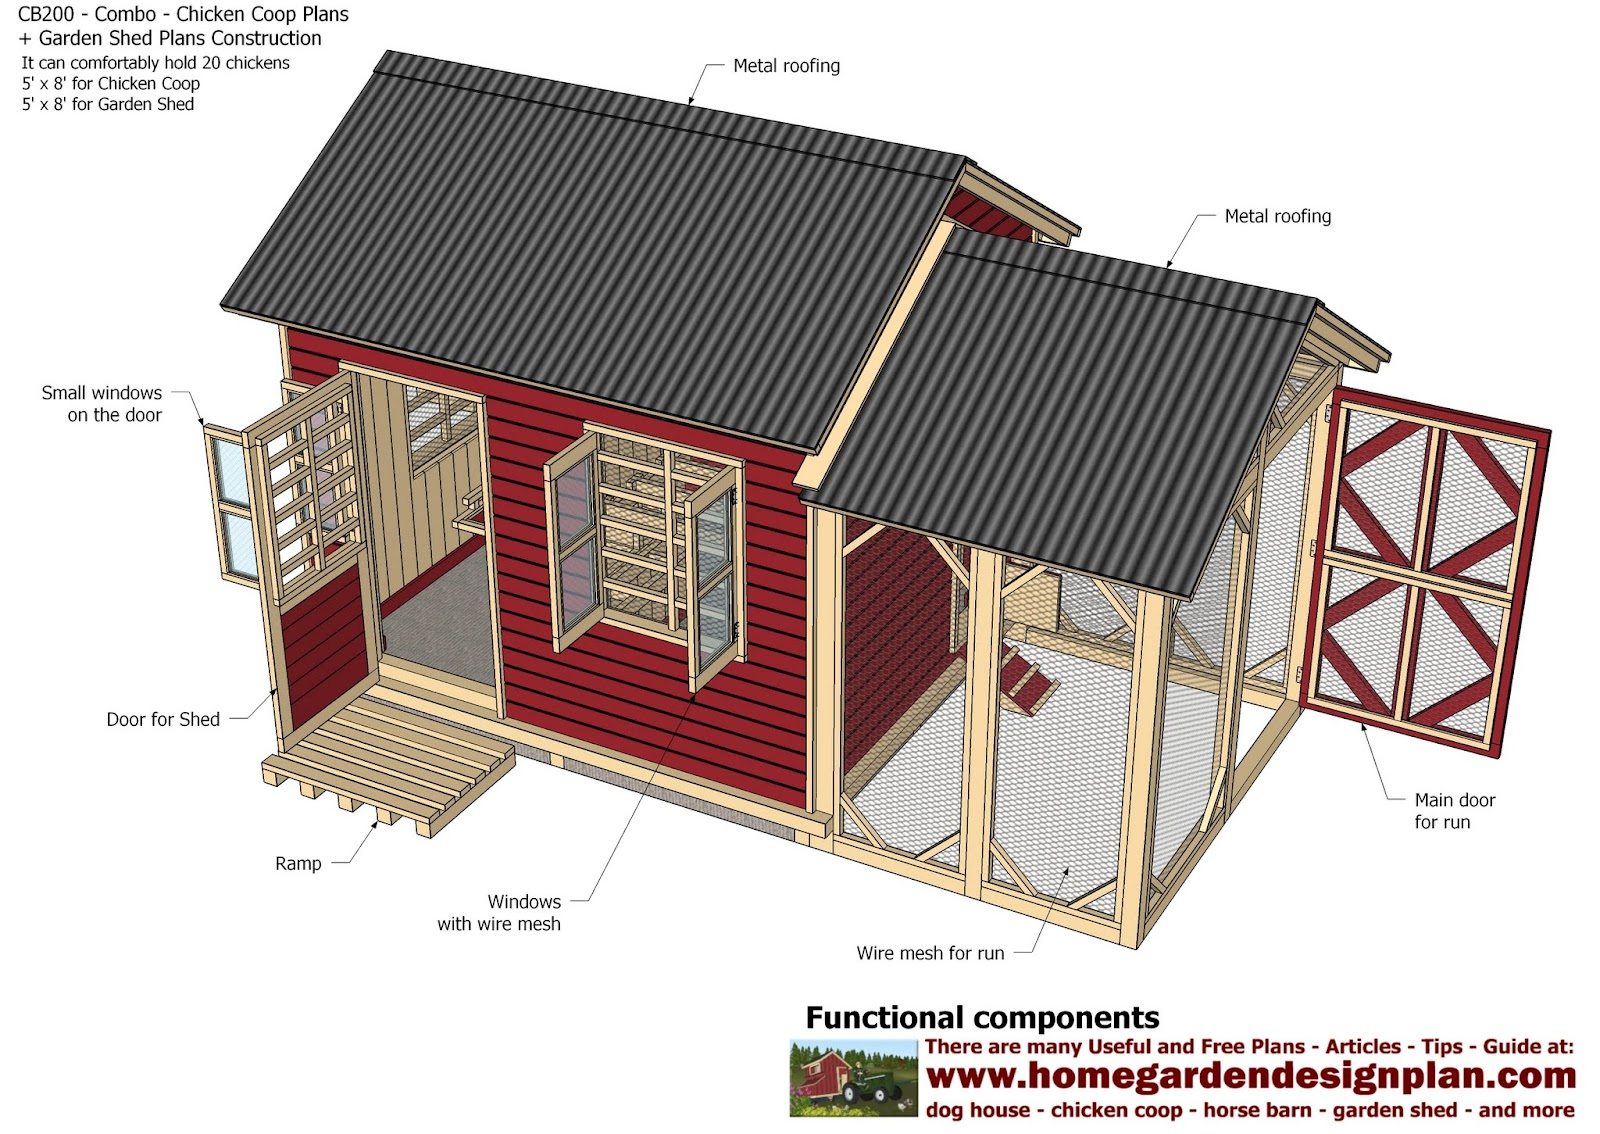 Home garden plans cb200 combo plans chicken coop for Homegardendesignplan